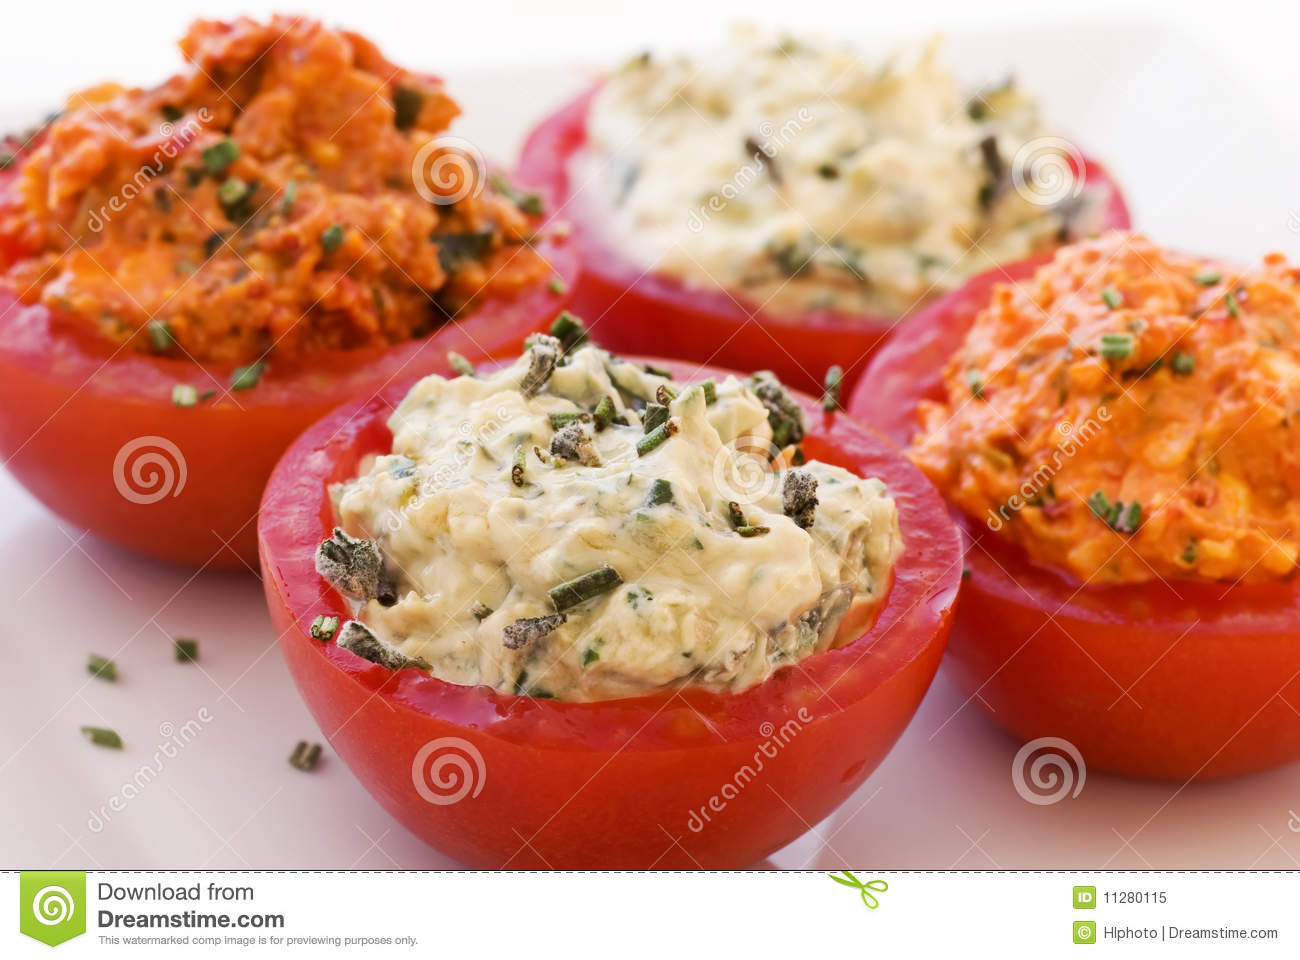 Filled Tomatoes Royalty Free Stock Photo - Image: 11280115